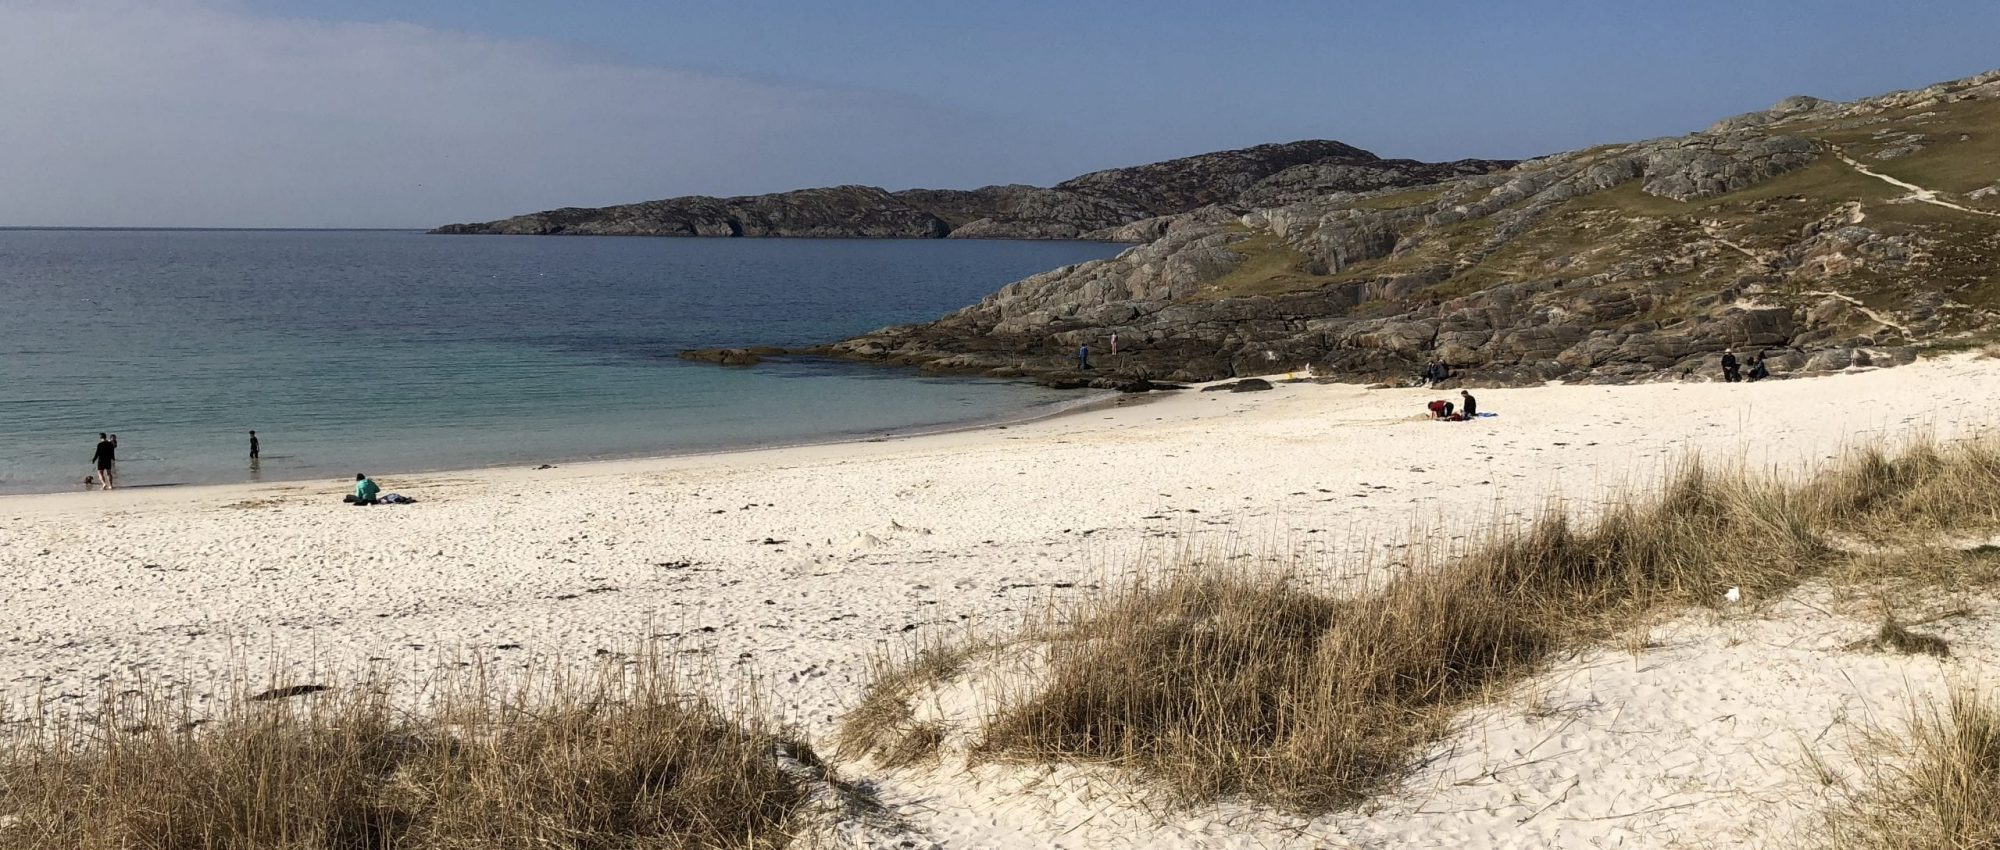 White sandy beach in bay with rocky coves